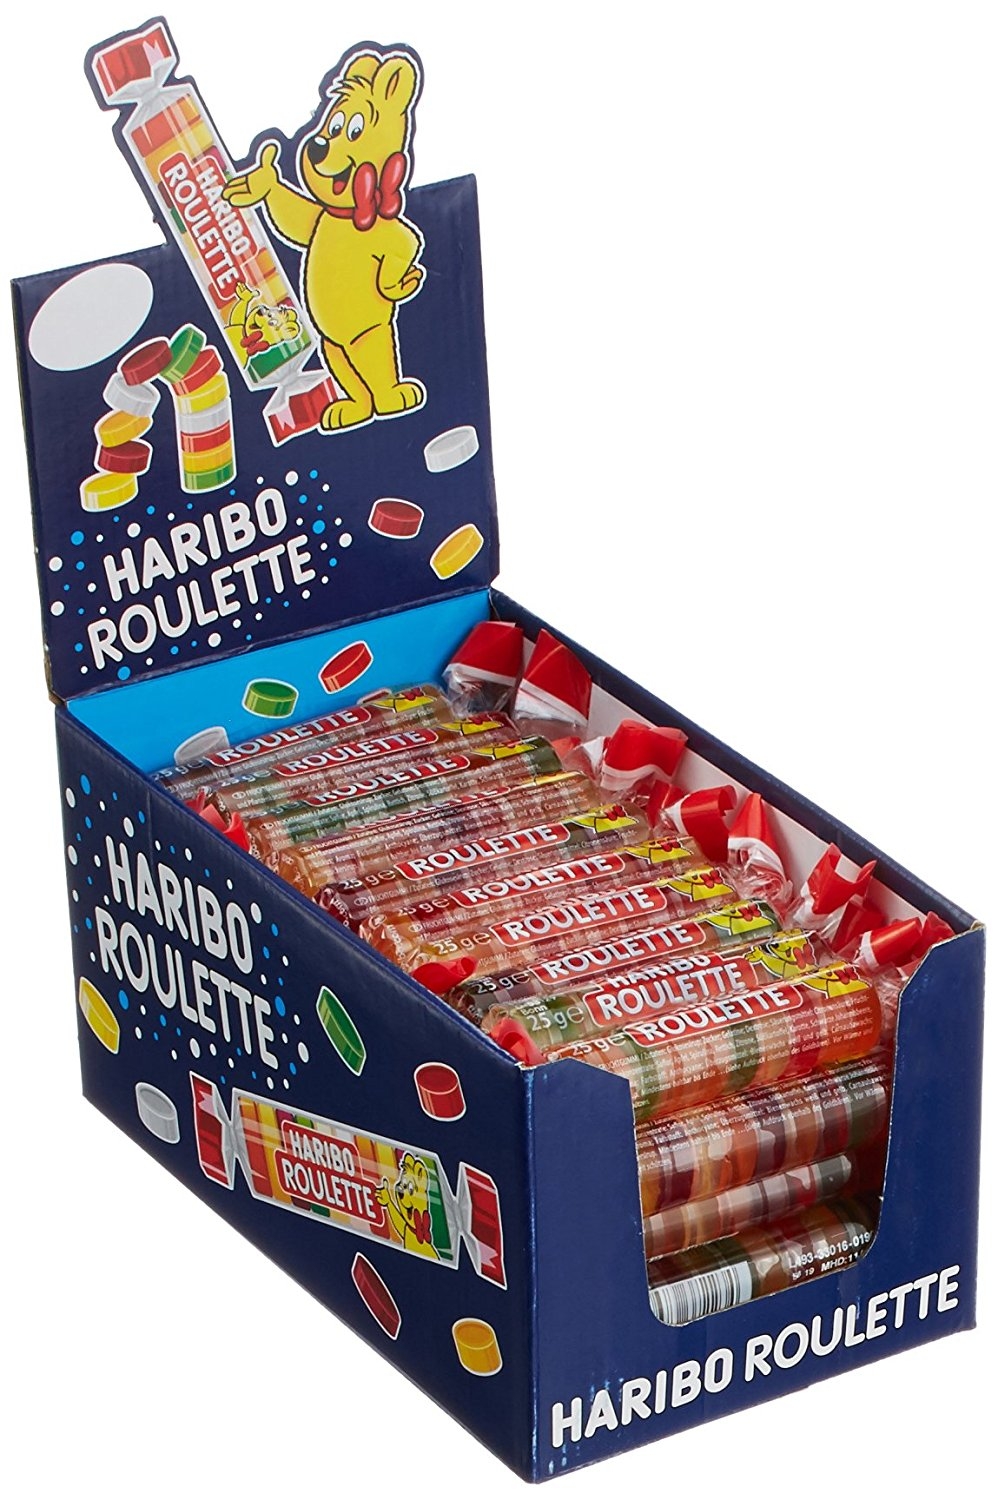 Haribo Roulette amazon